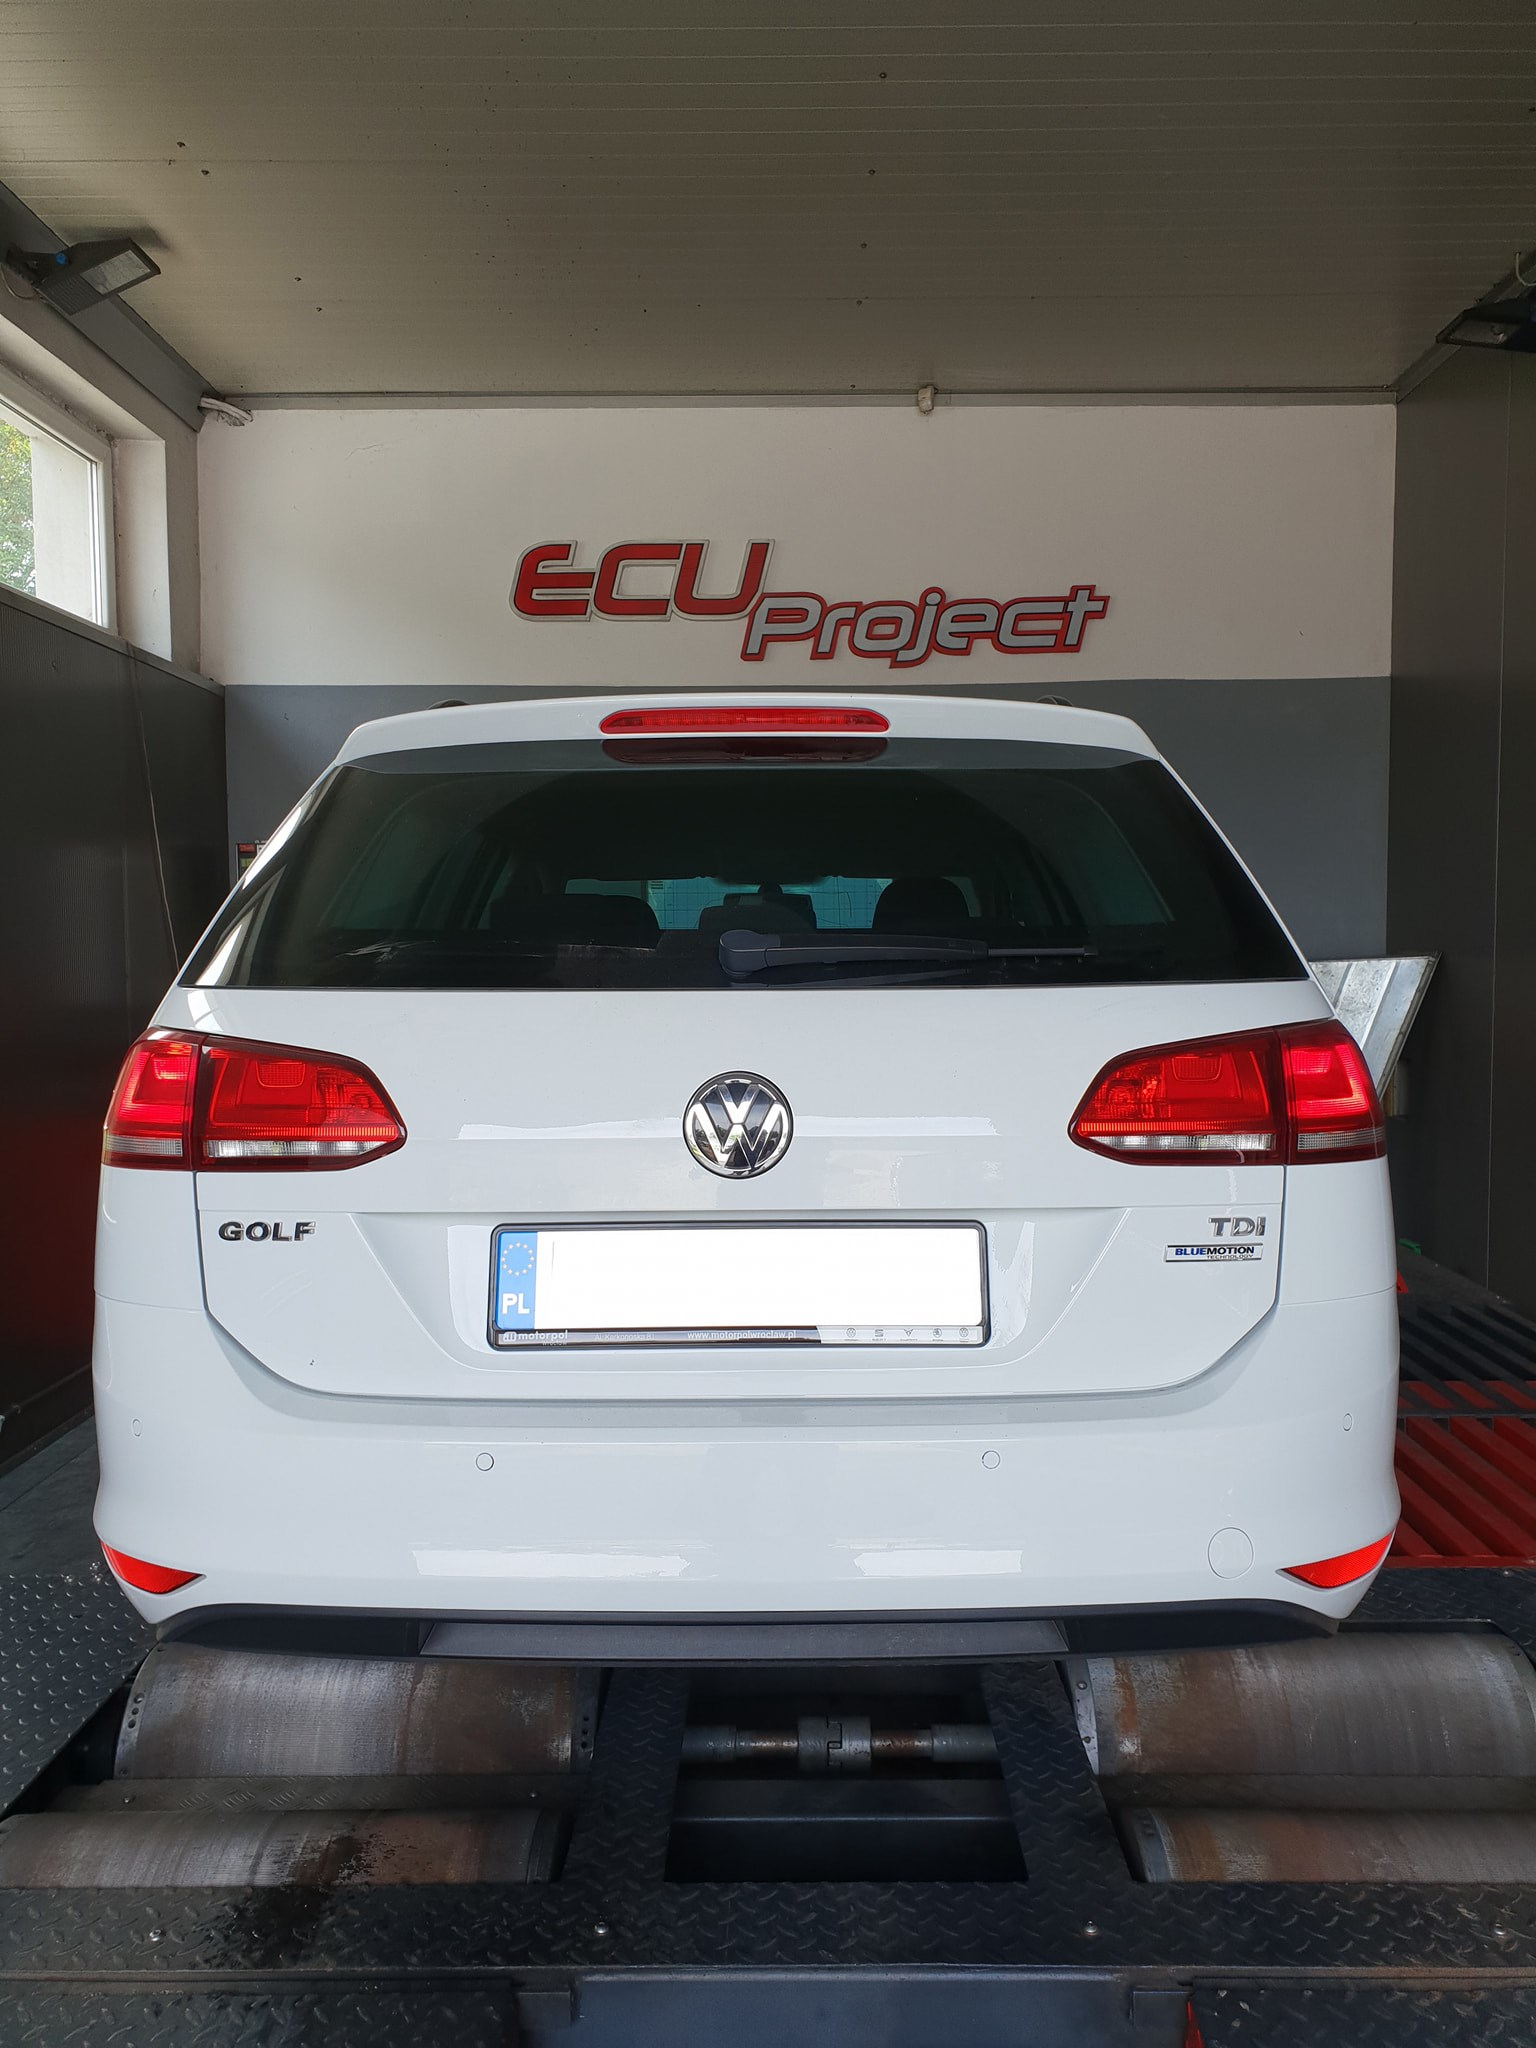 Golf 7 1.6TDI 90Ps hamownia